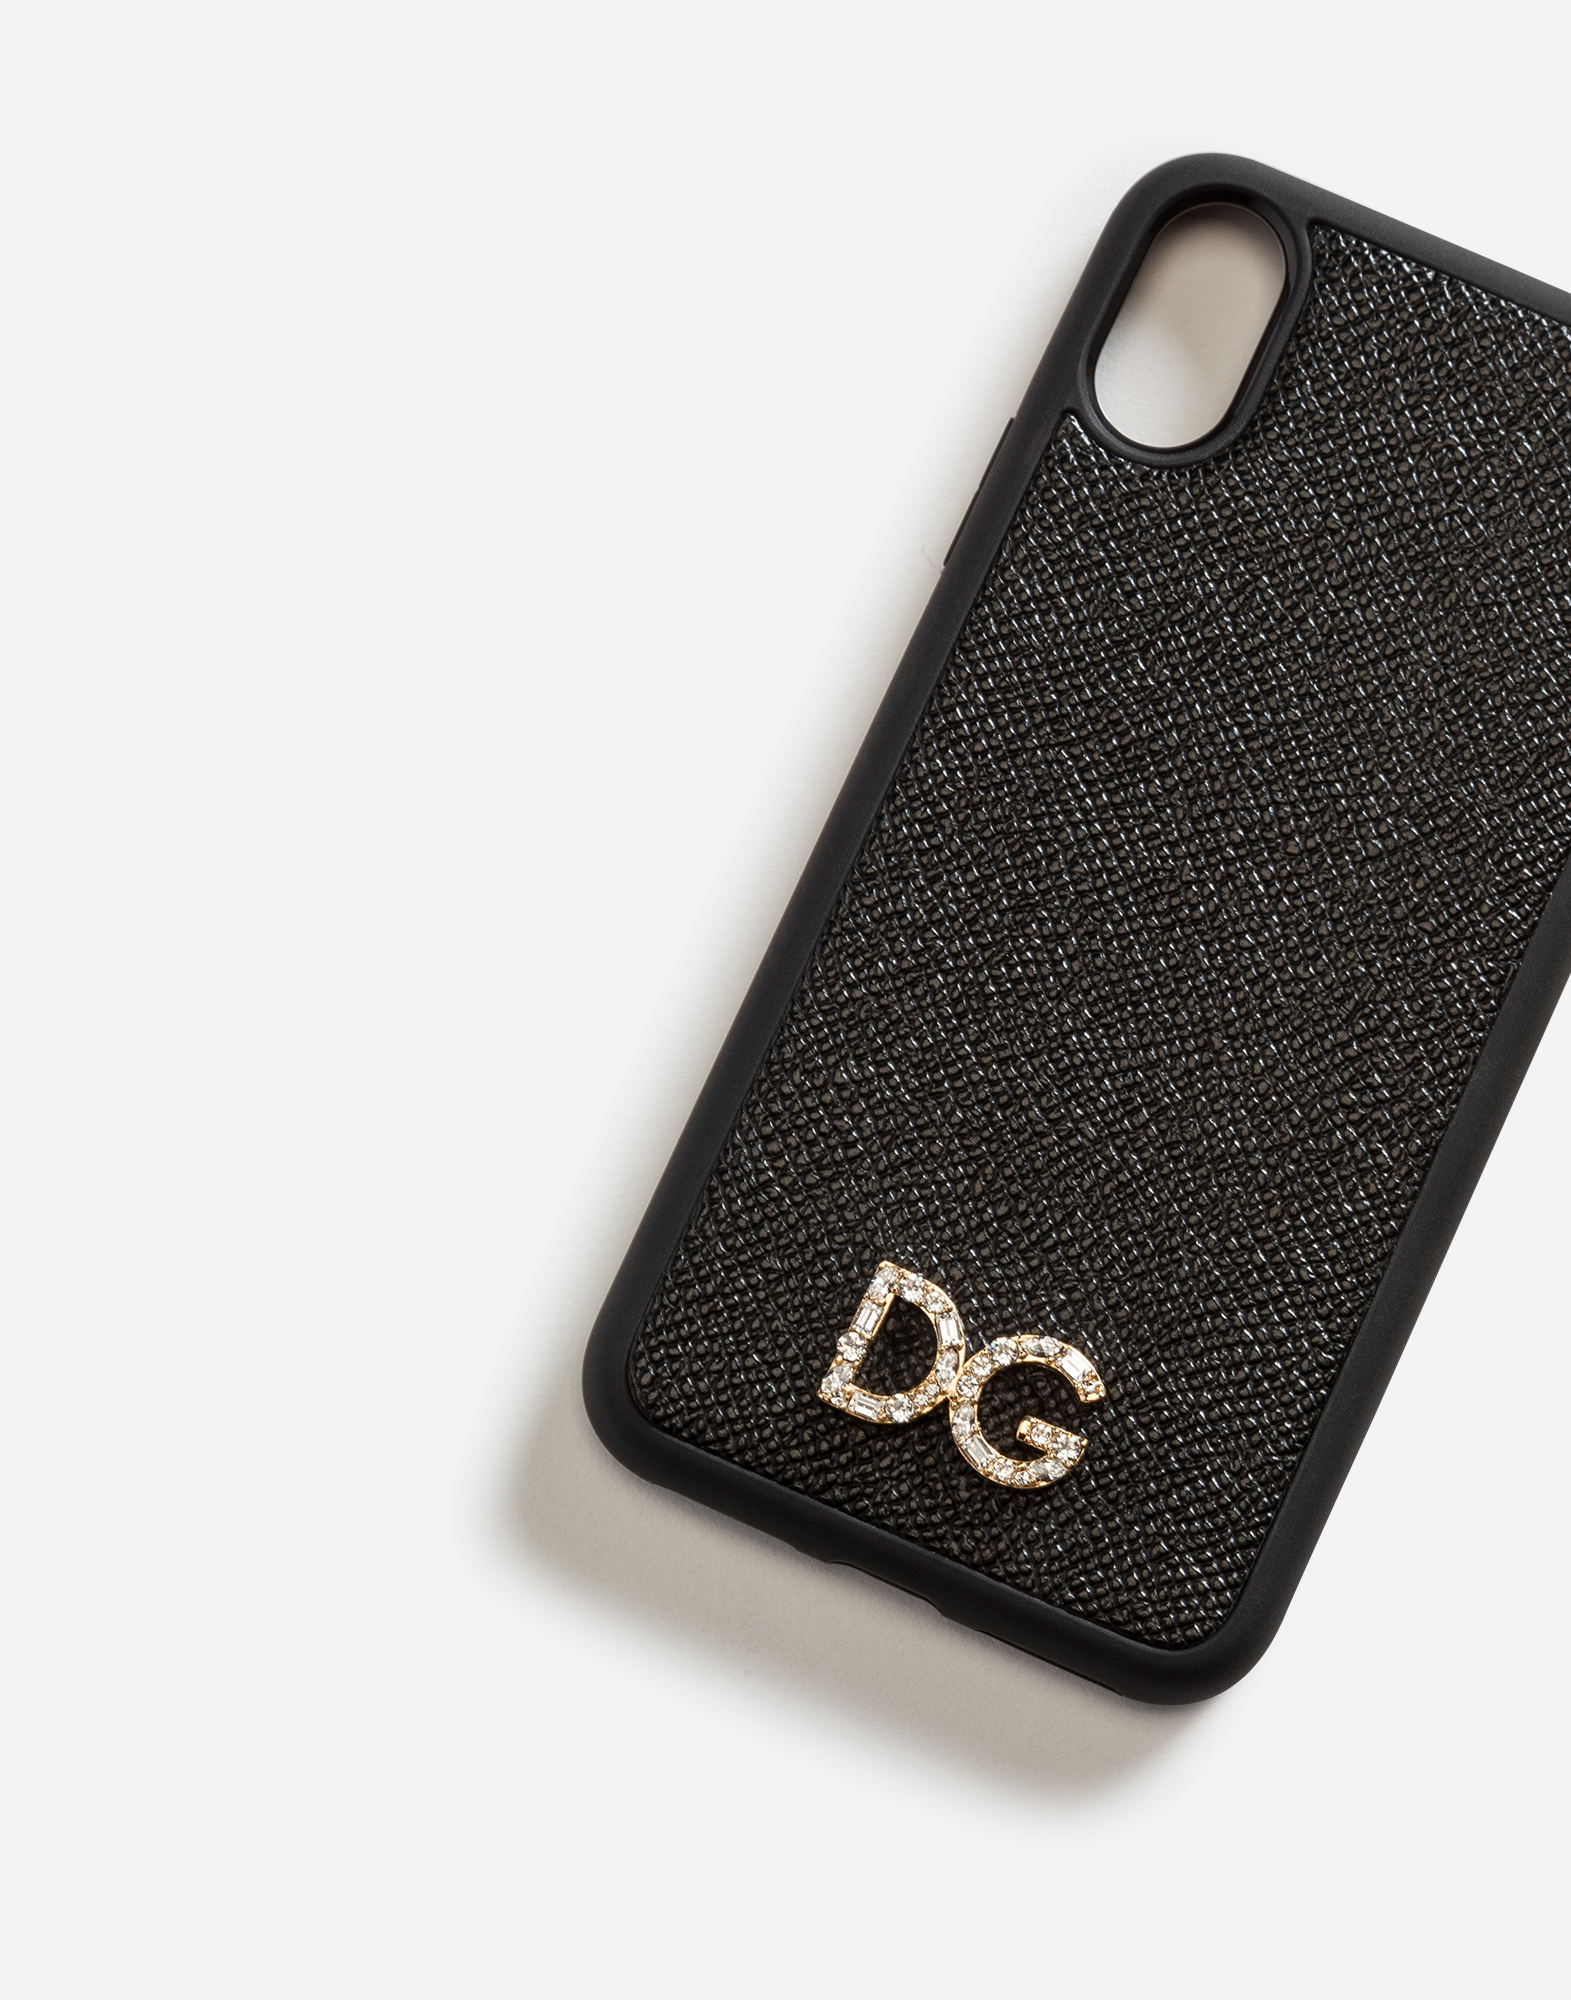 IPHONE X COVER WITH DAUPHINE CALFSKIN DETAIL AND DG CRYSTAL LOGO